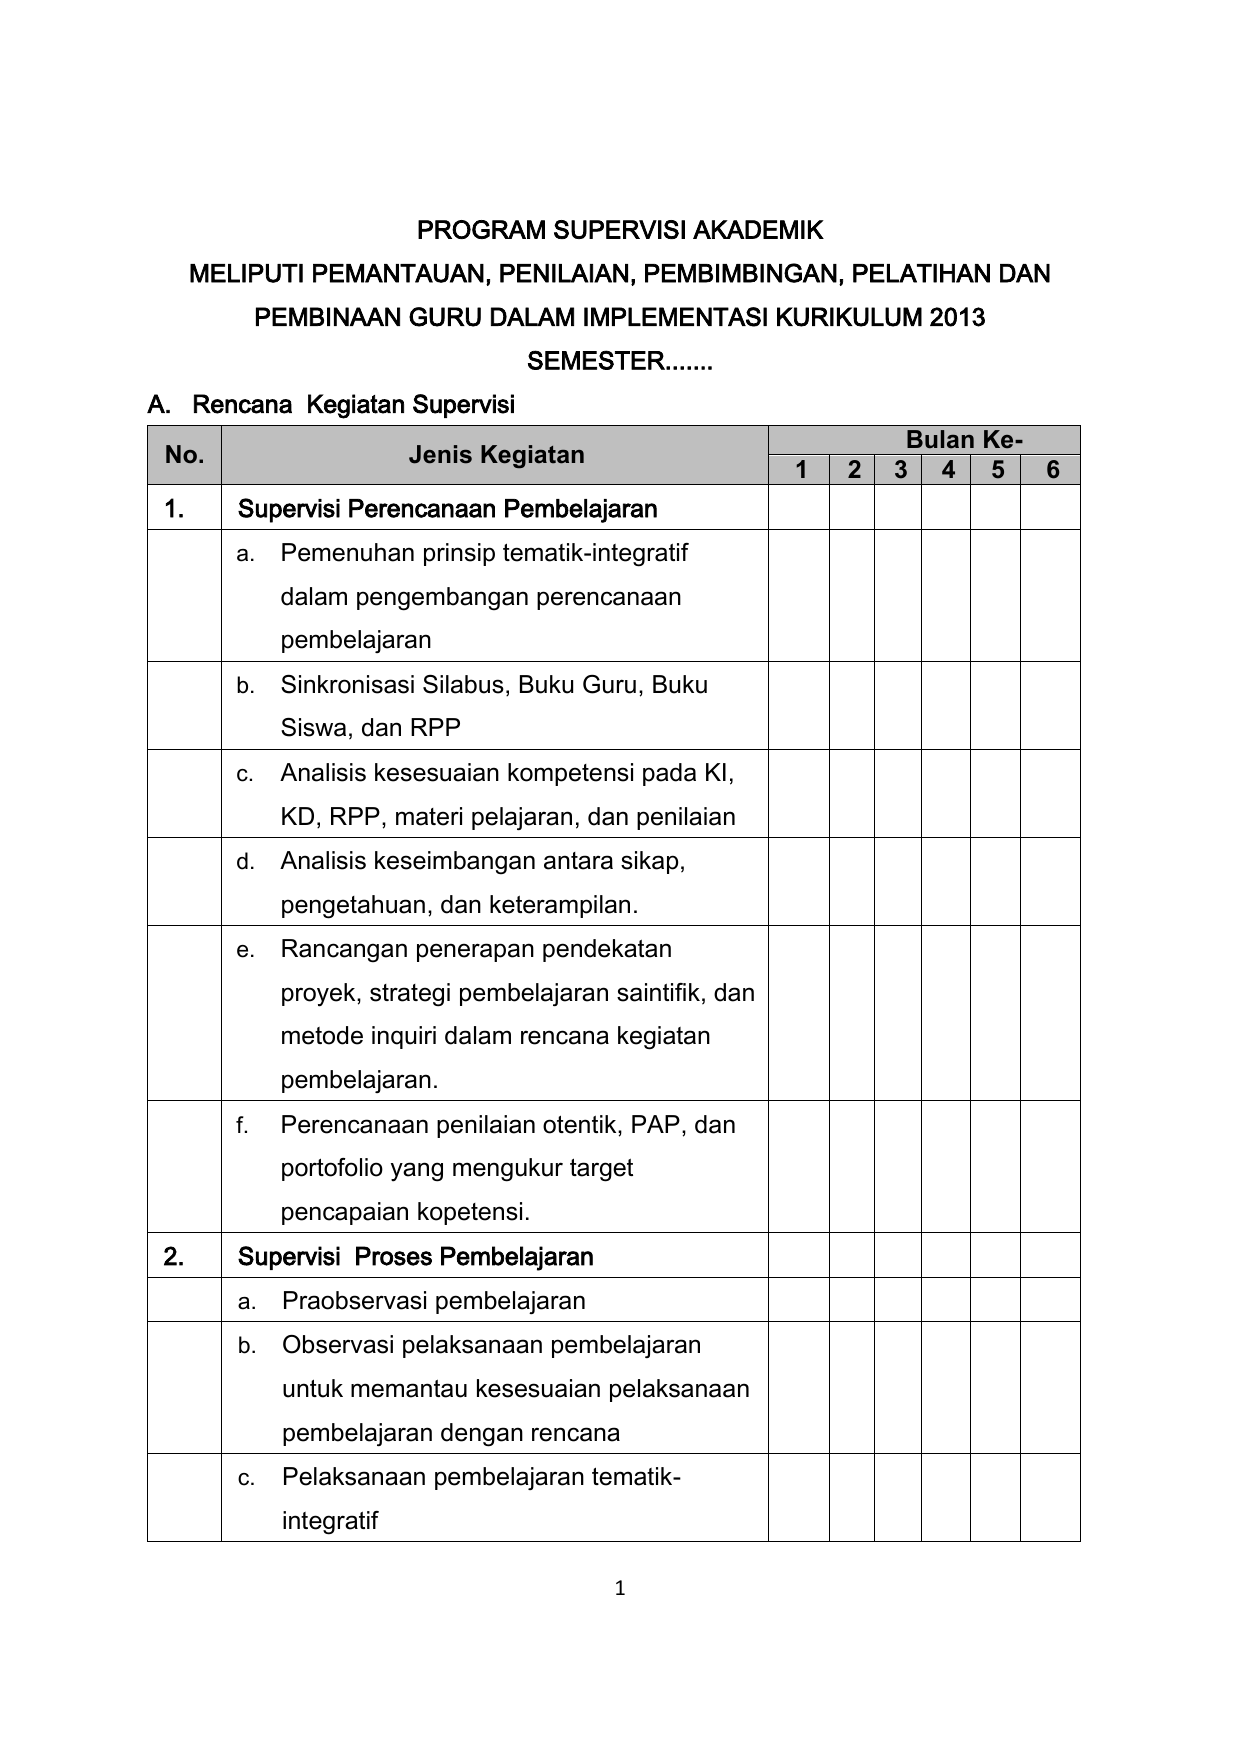 Program Supervisi Akademik Meliputi Pemantauan